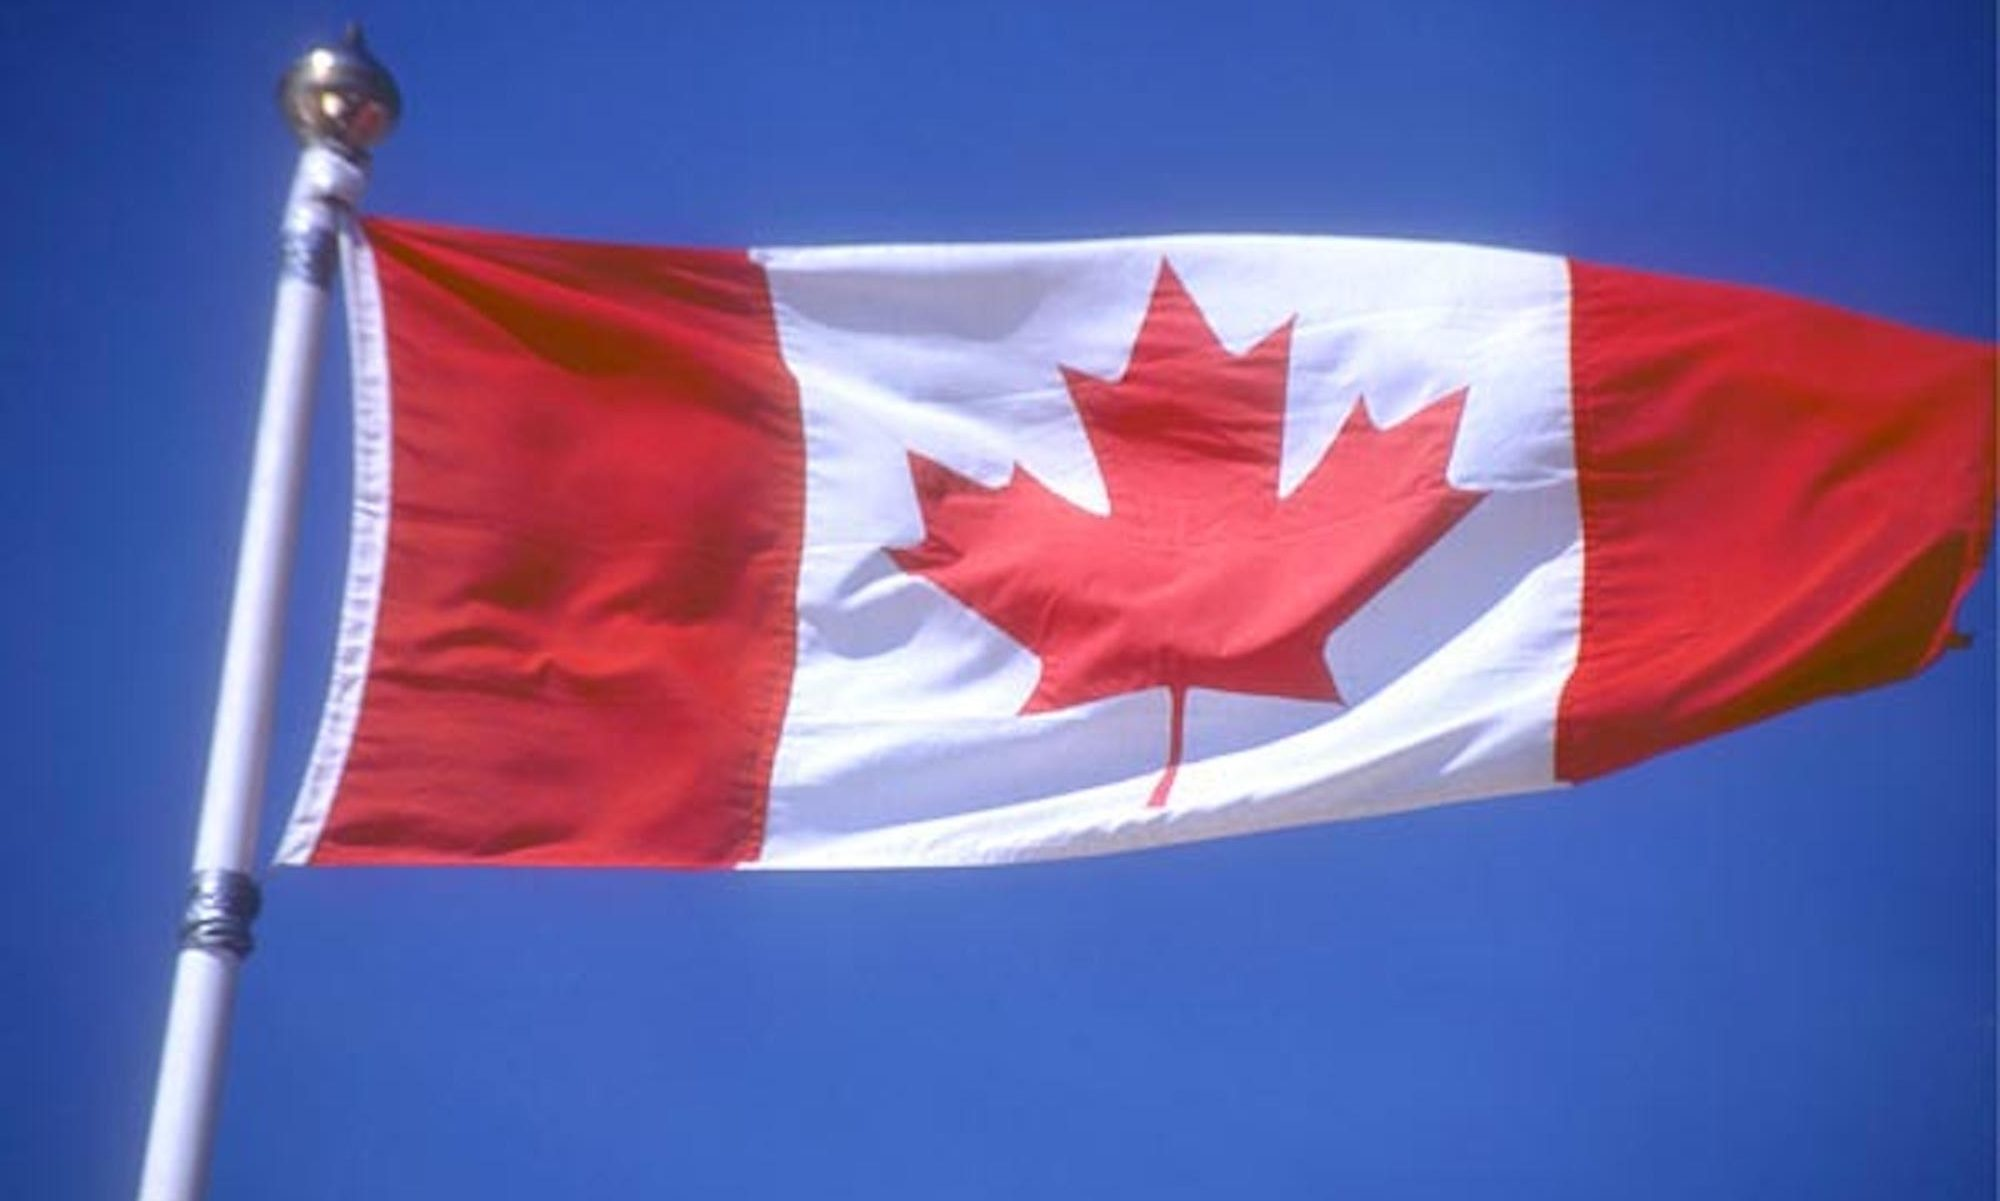 The Right To Keep and Bear Arms in Canada